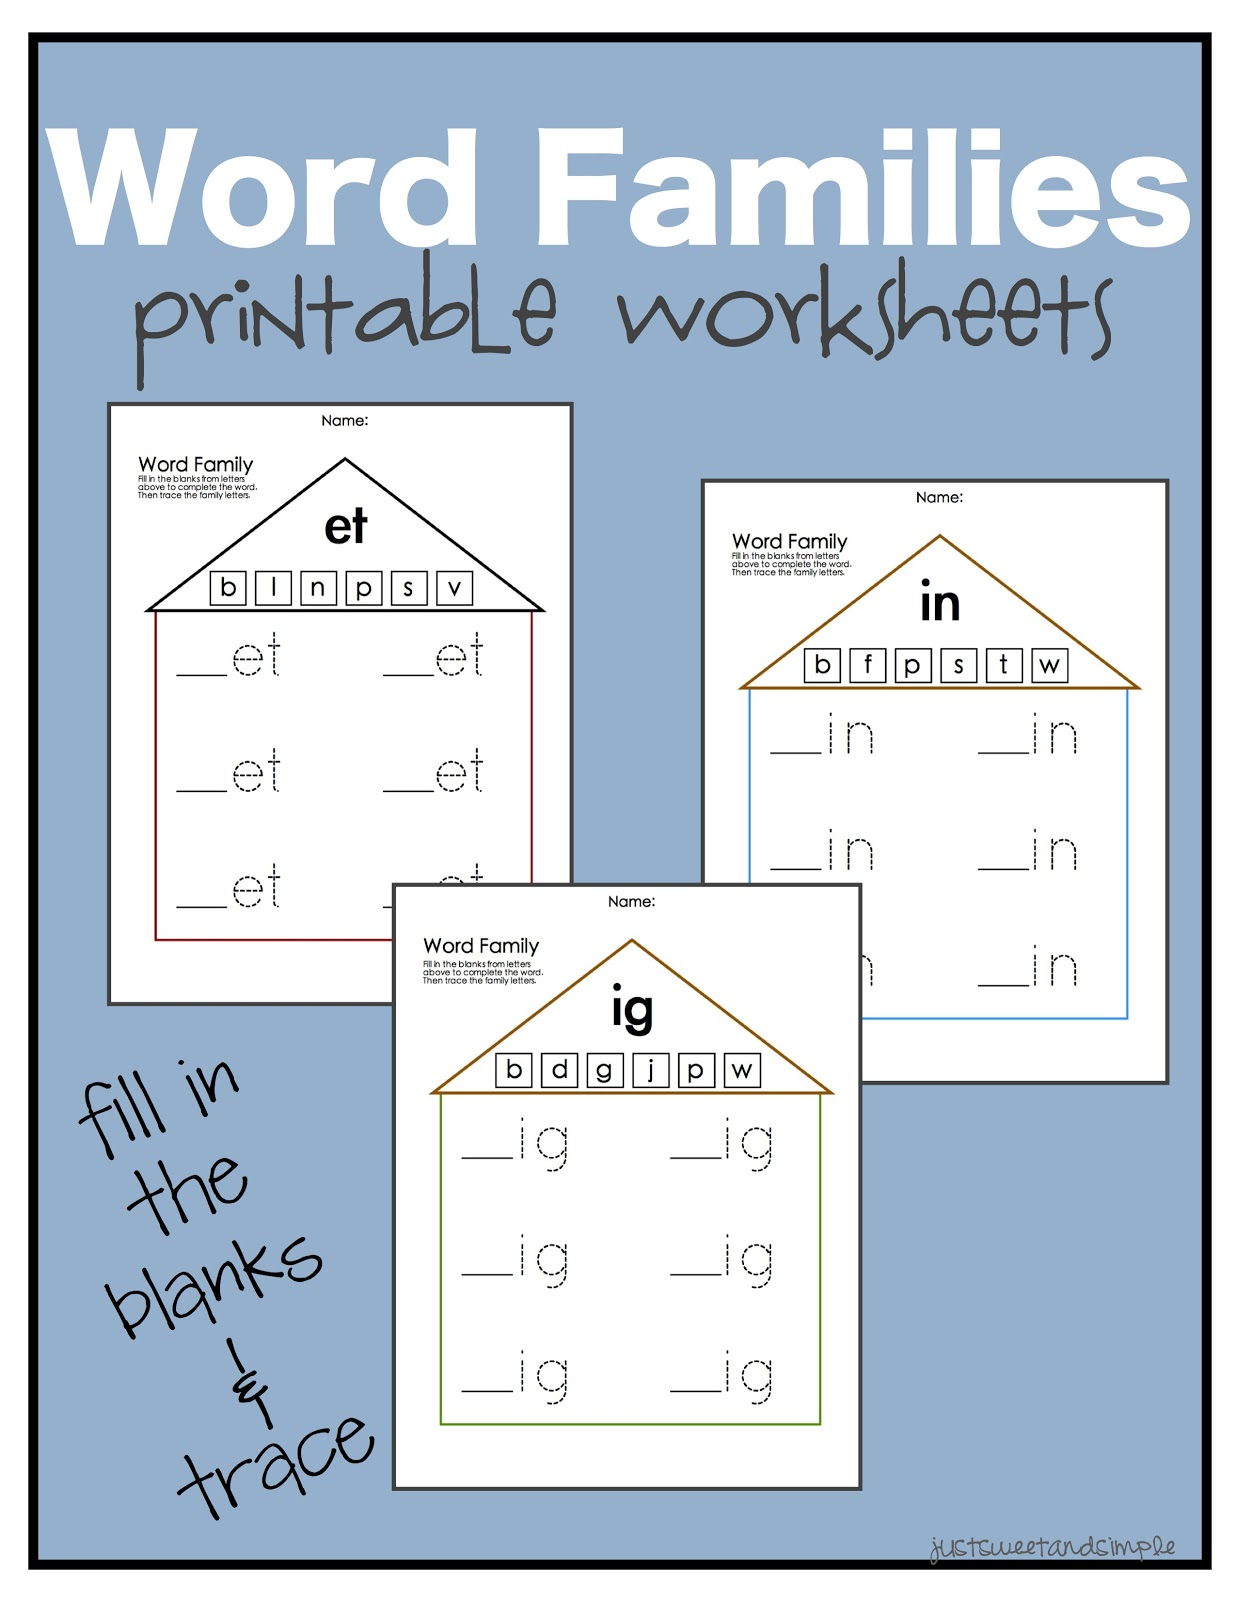 Worksheet Word Family Worksheet Grass Fedjp Worksheet